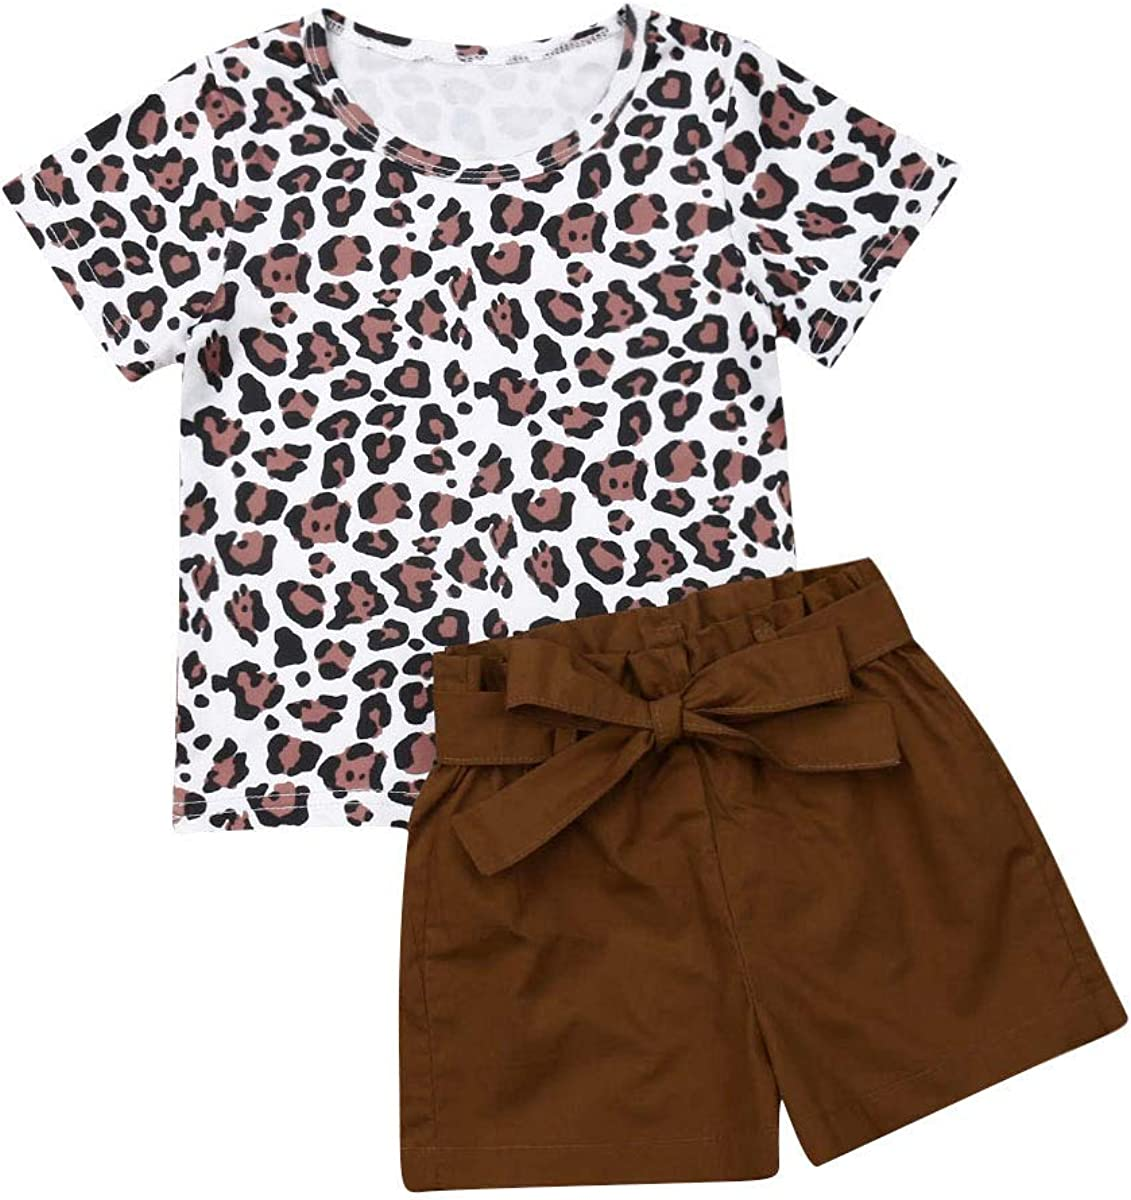 Fepege Toddler Baby Girl Cotton Linen Shorts Set Short Sleeve T-Shirts and Solid Color Shorts with Drawstring Outfits